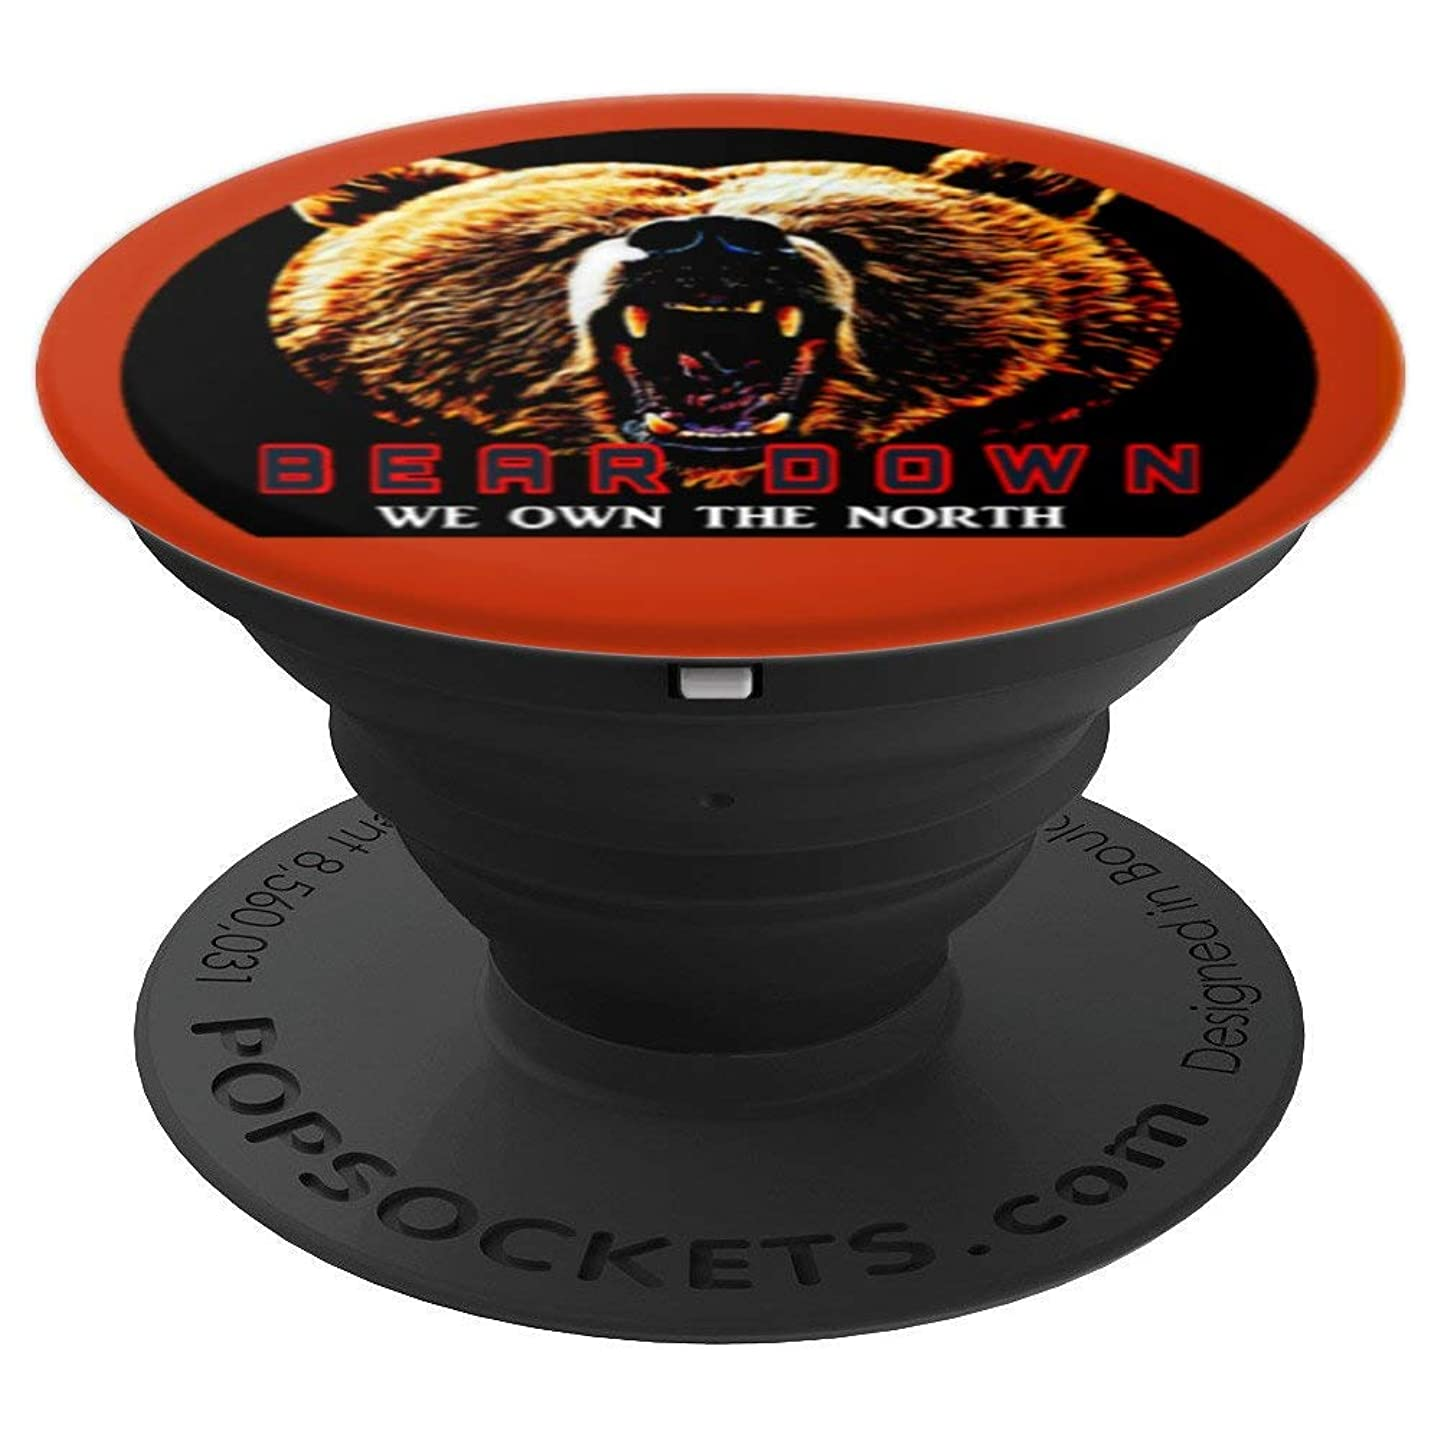 Bear Down Chi-Town Bears Football Orange Black Phone Mount - PopSockets Grip and Stand for Phones and Tablets